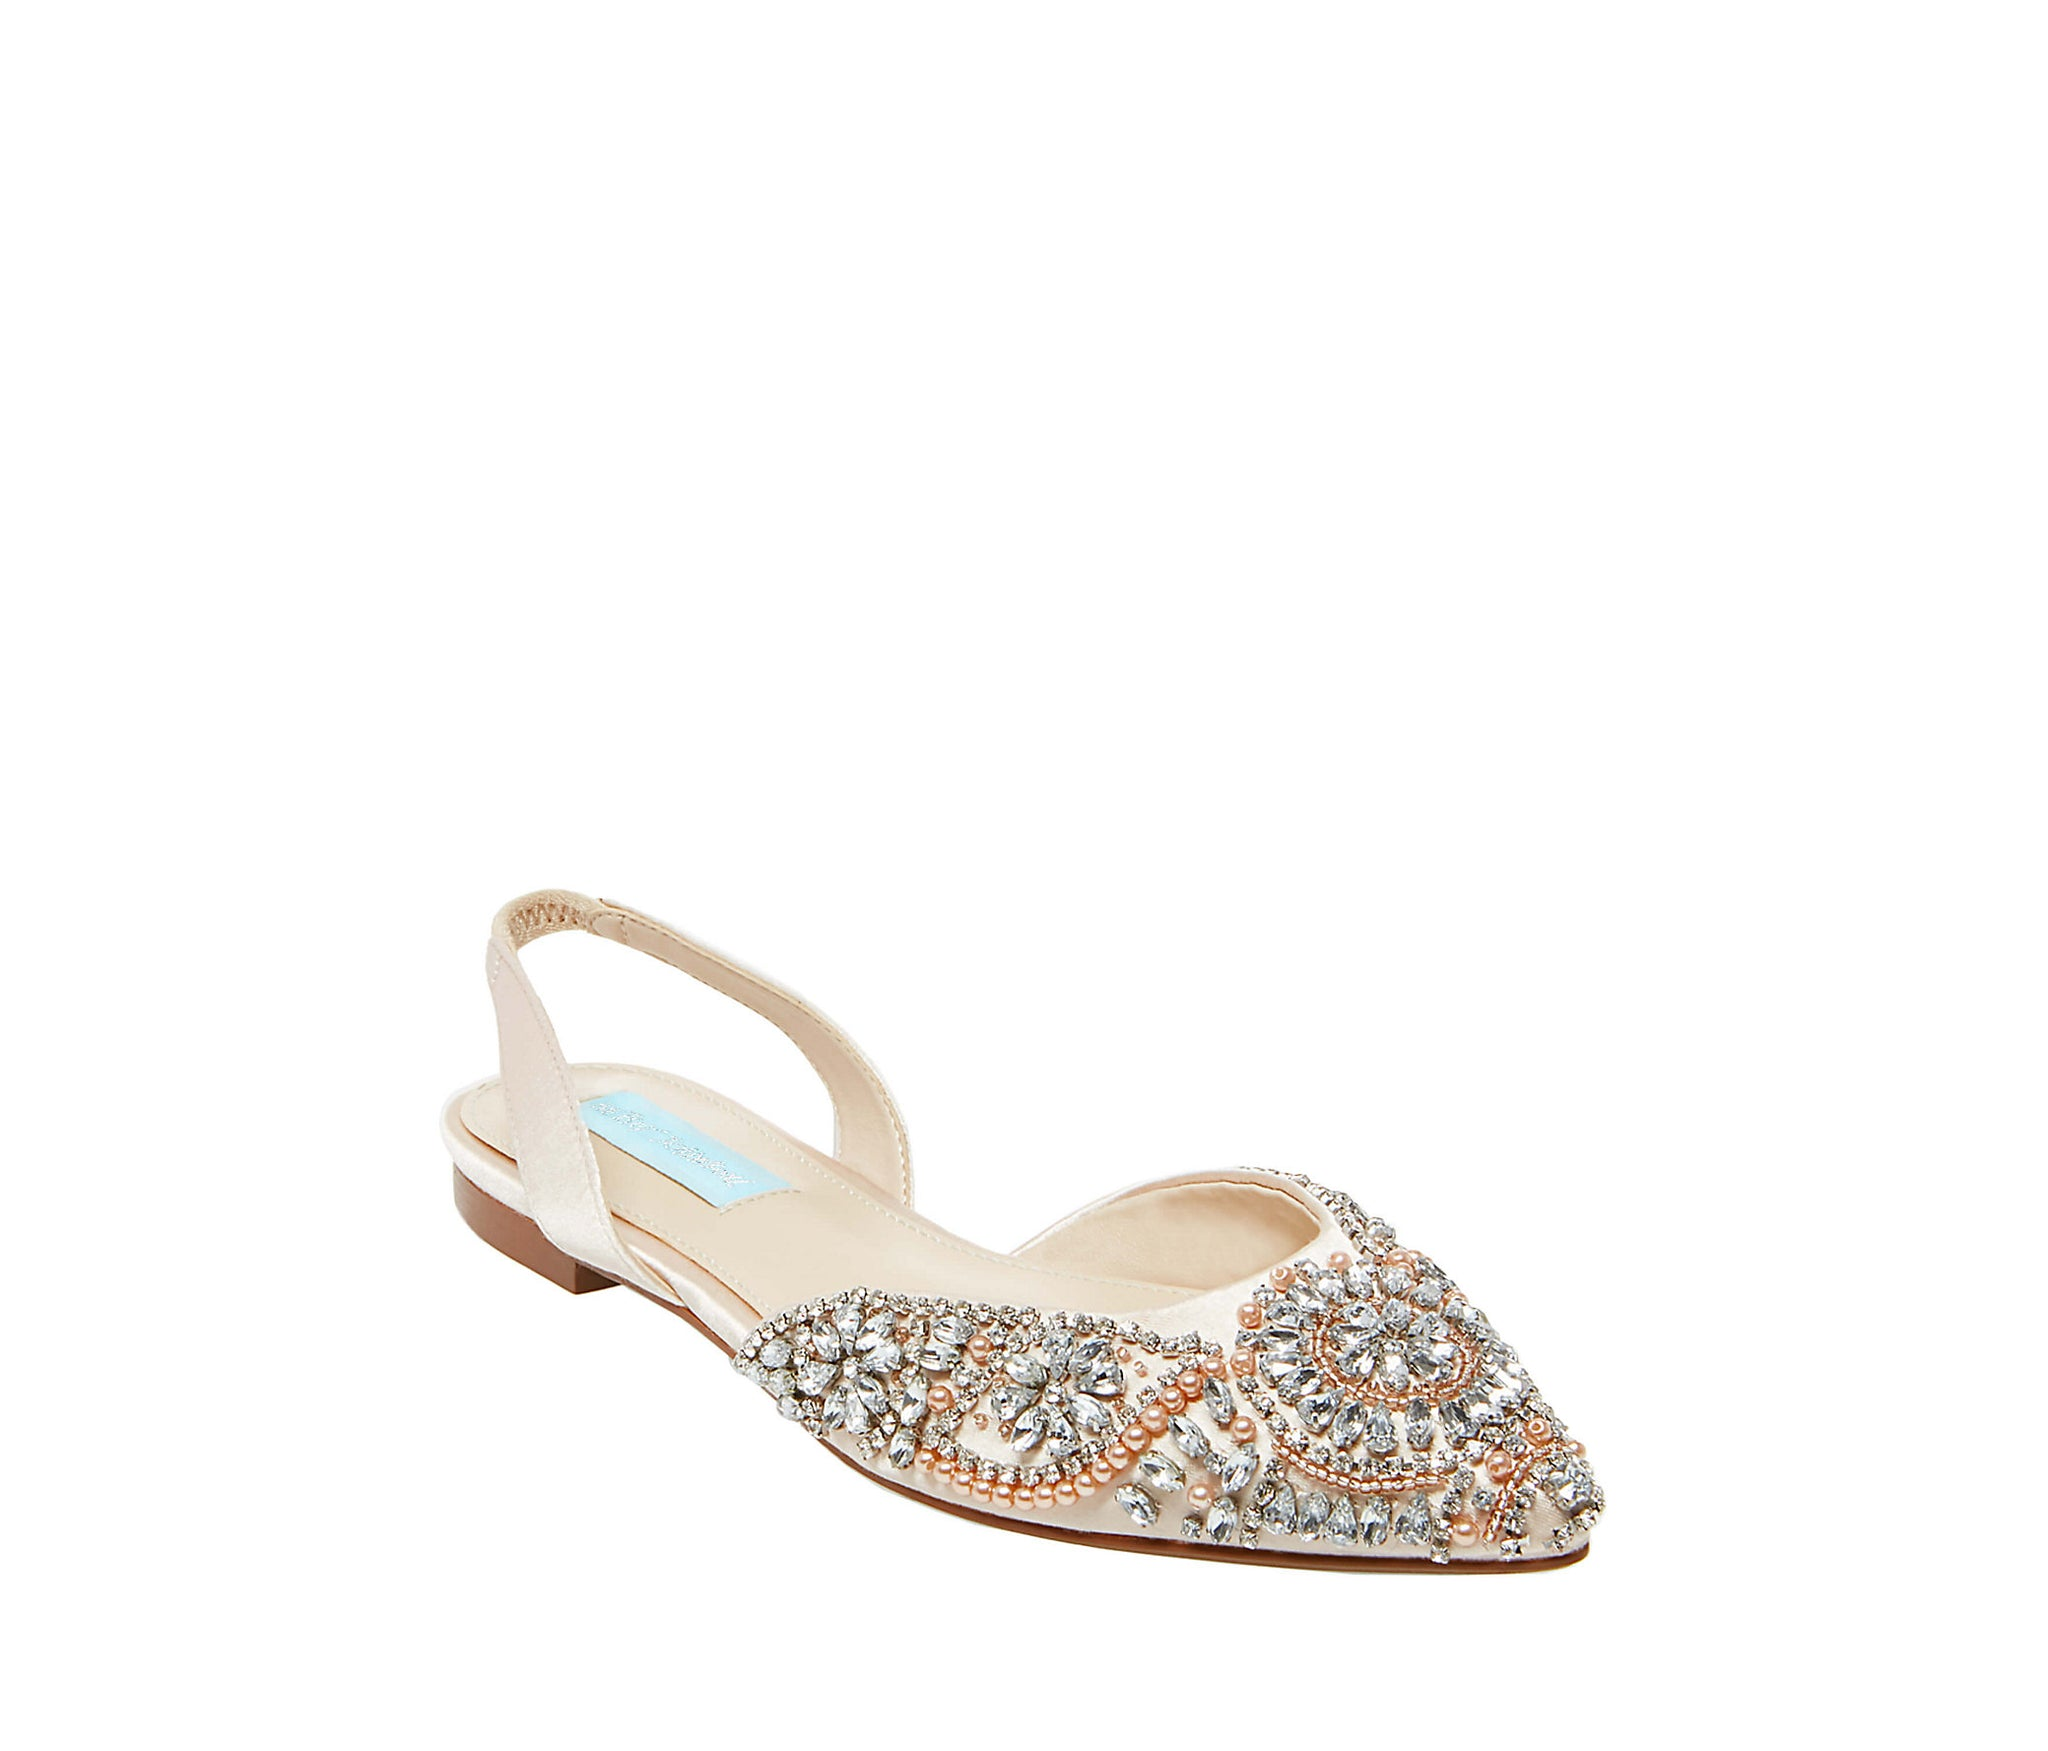 2f5970d8de8 SB-MOLLY CHAMPAGNE SATIN - SHOES - Betsey Johnson ...